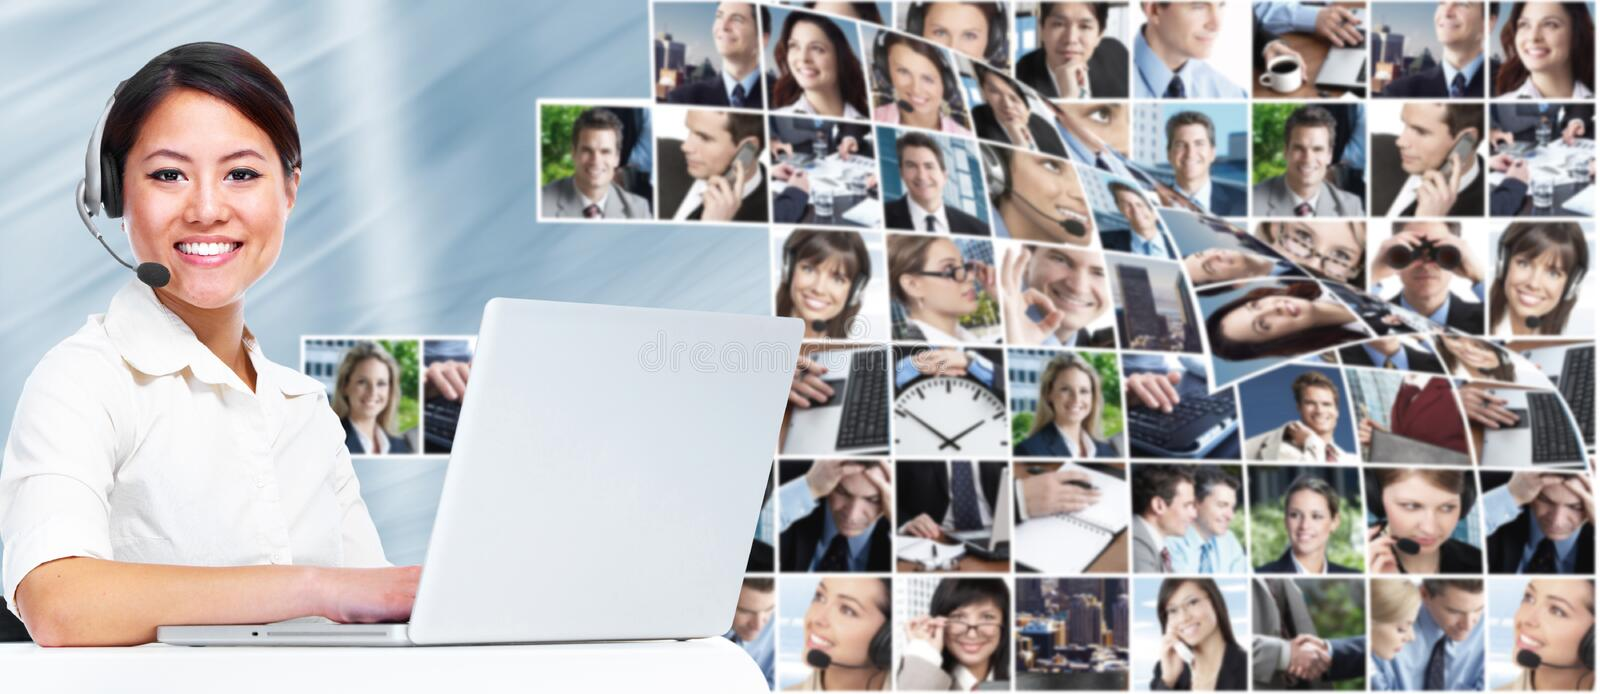 Call center operator business woman. stock image